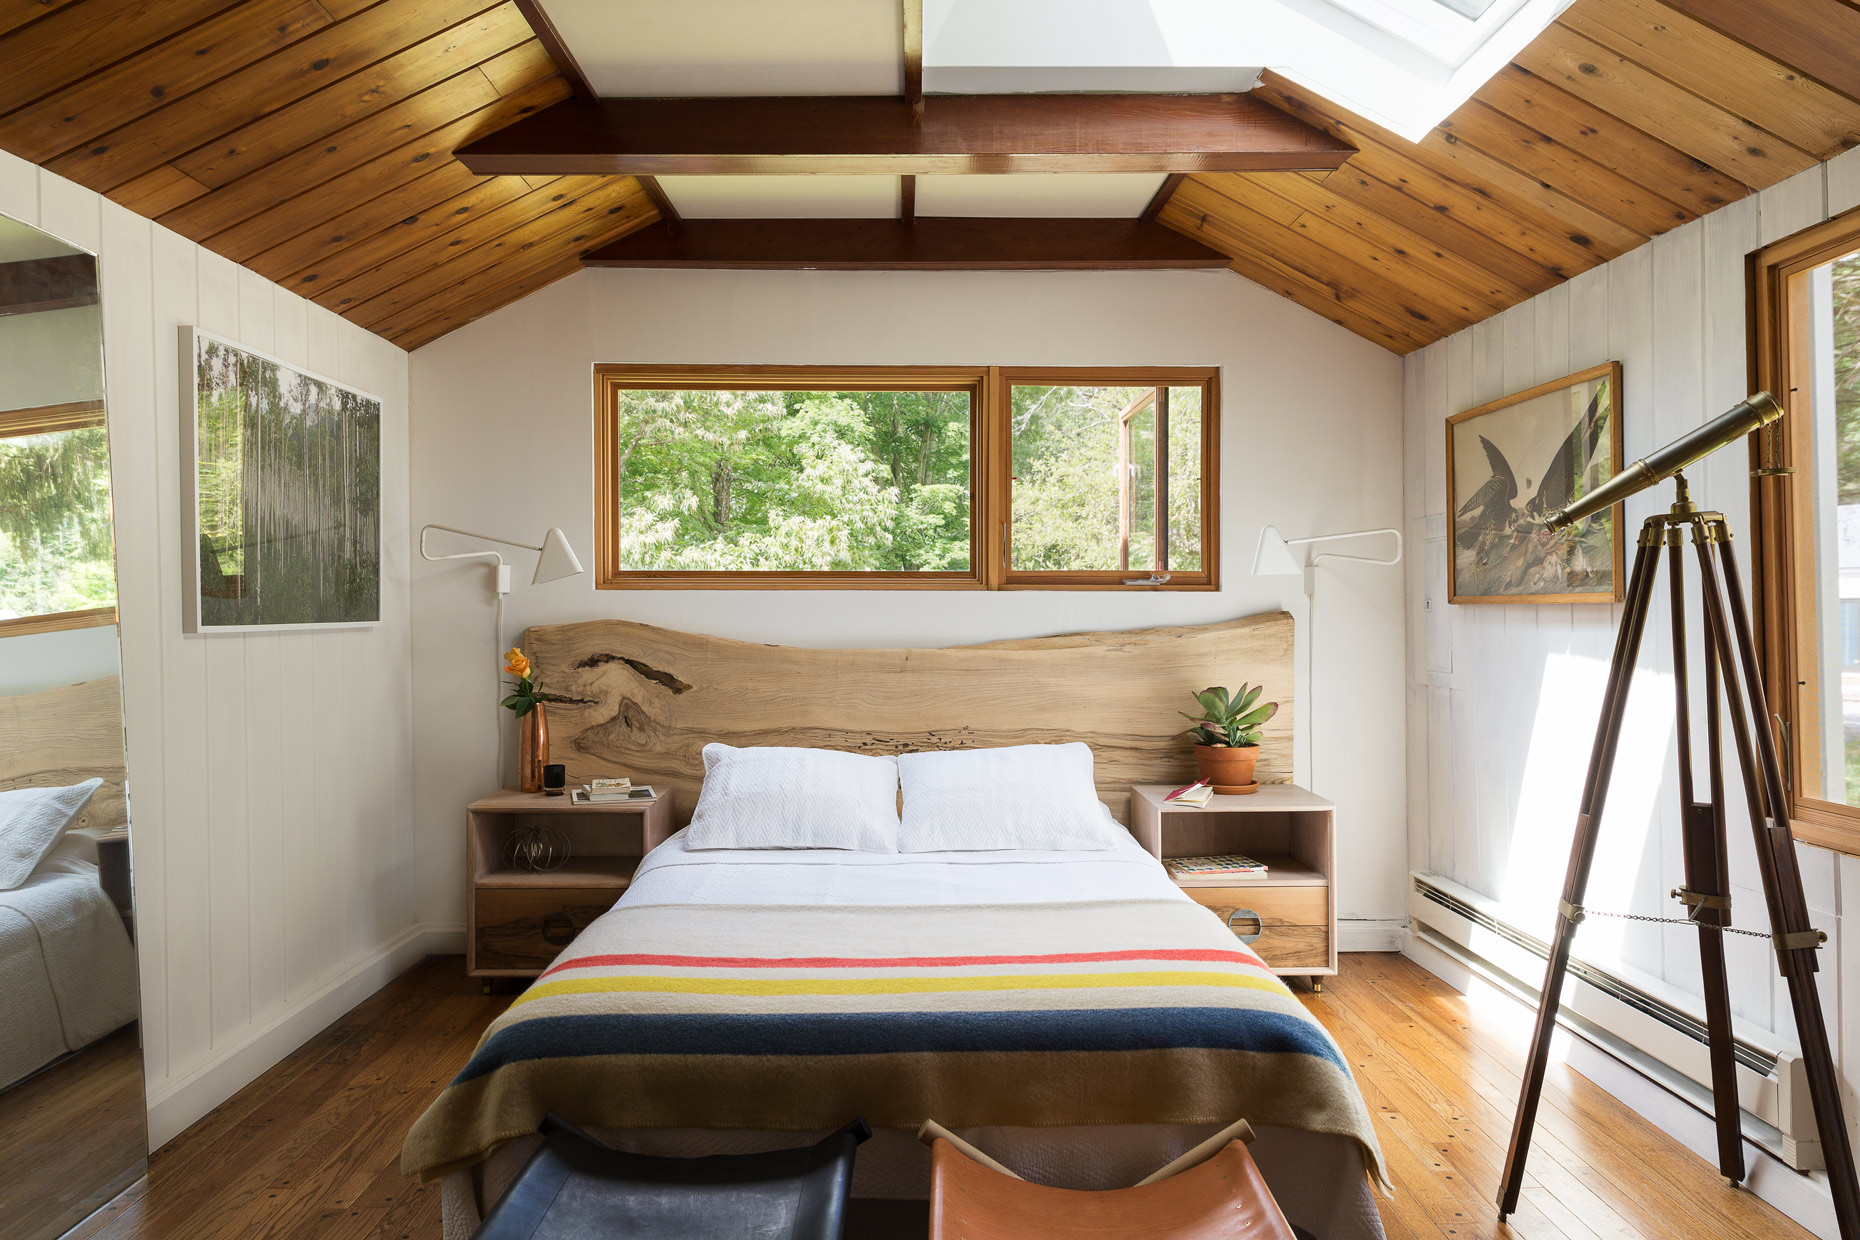 BALL & ALBANESE | An editorial interior image of a cabin bedroom